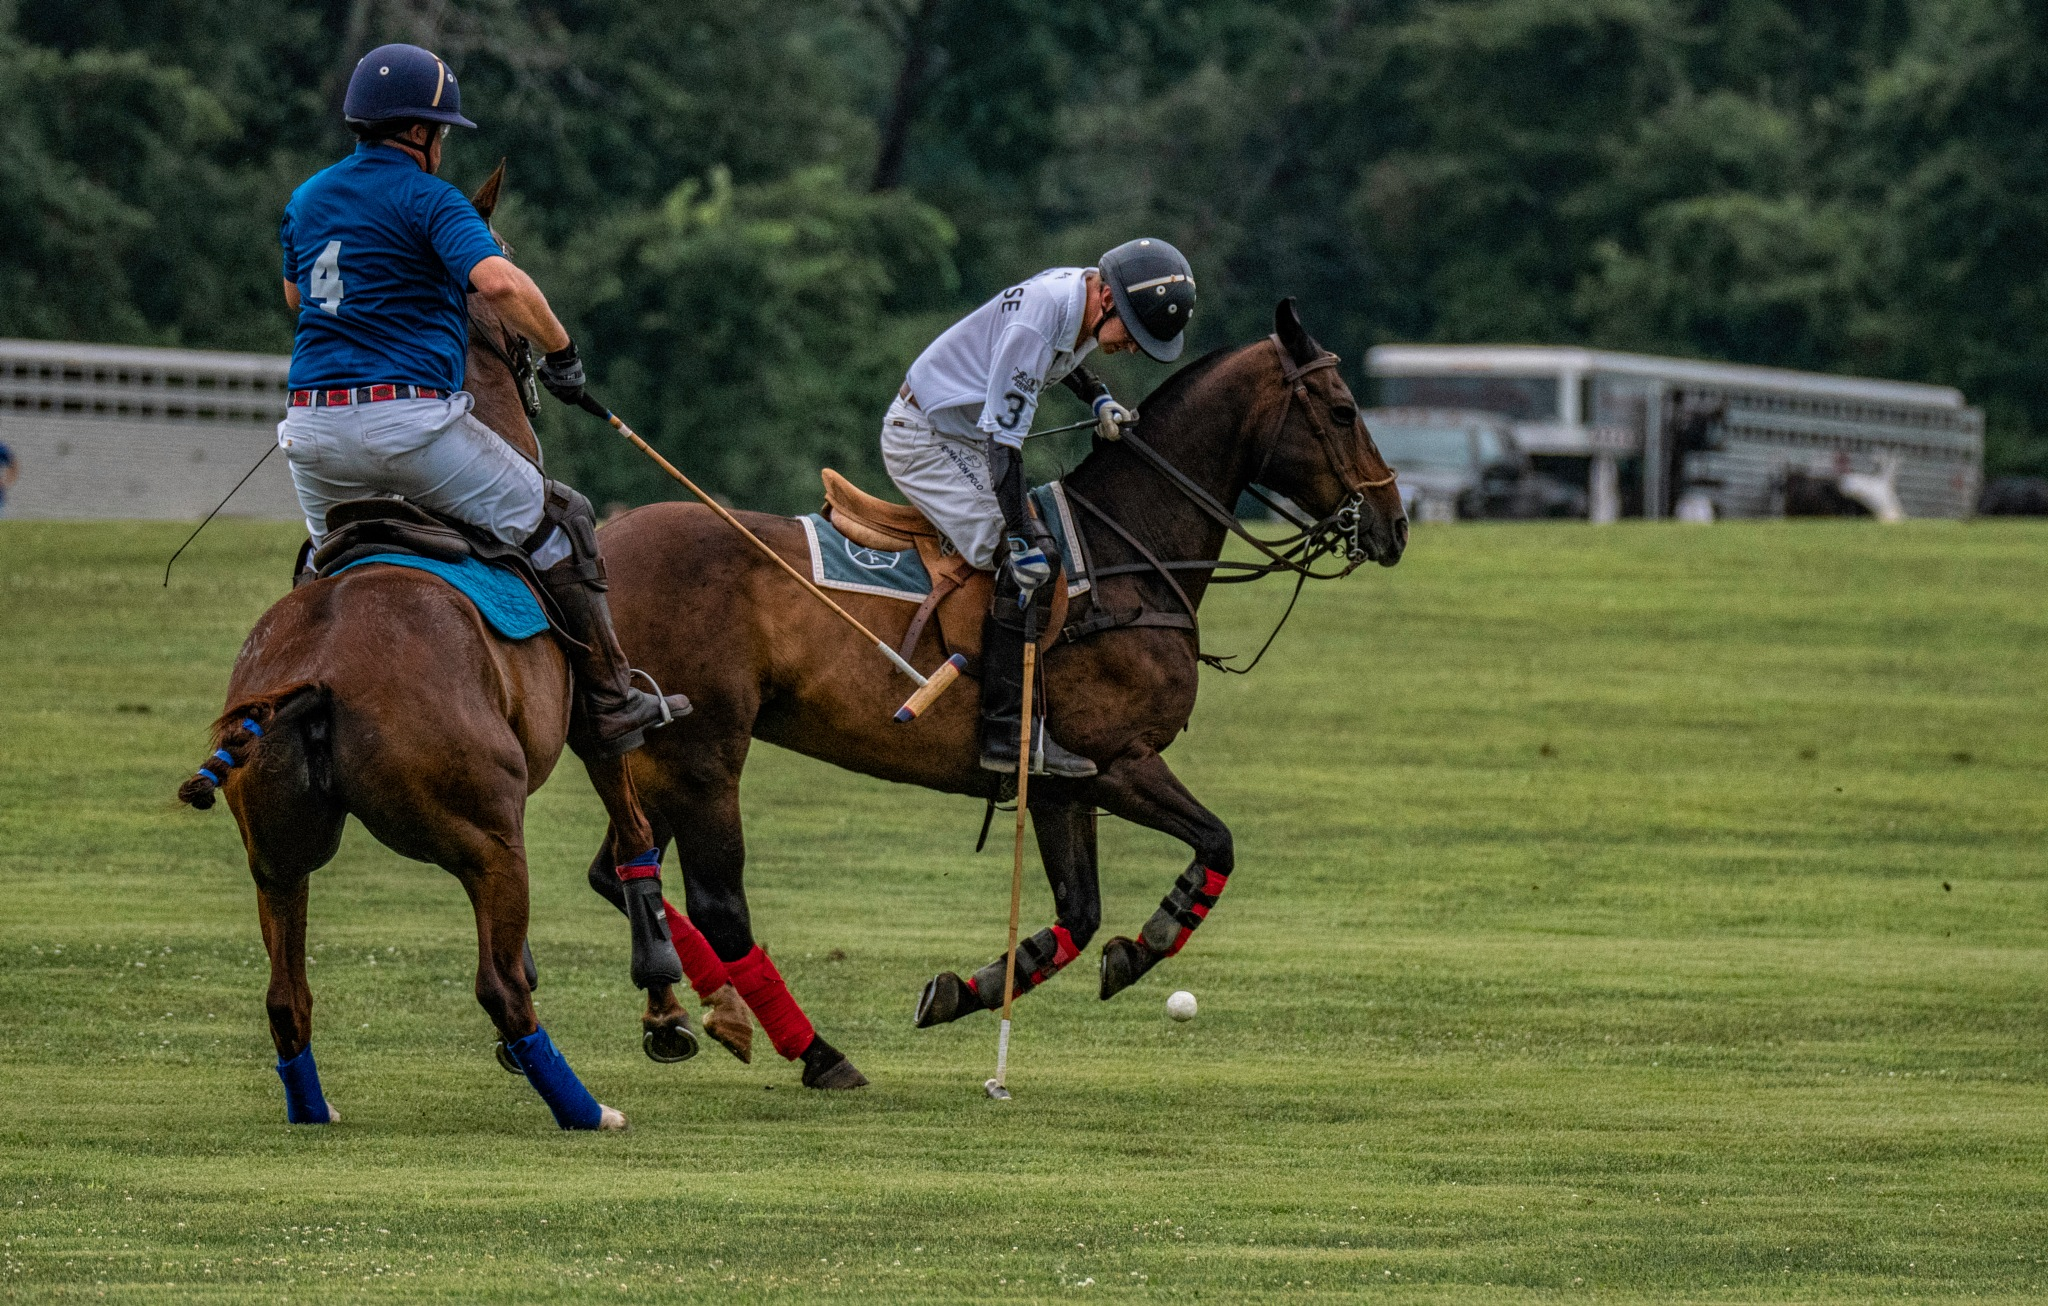 Polo 21 by JohnEllingson